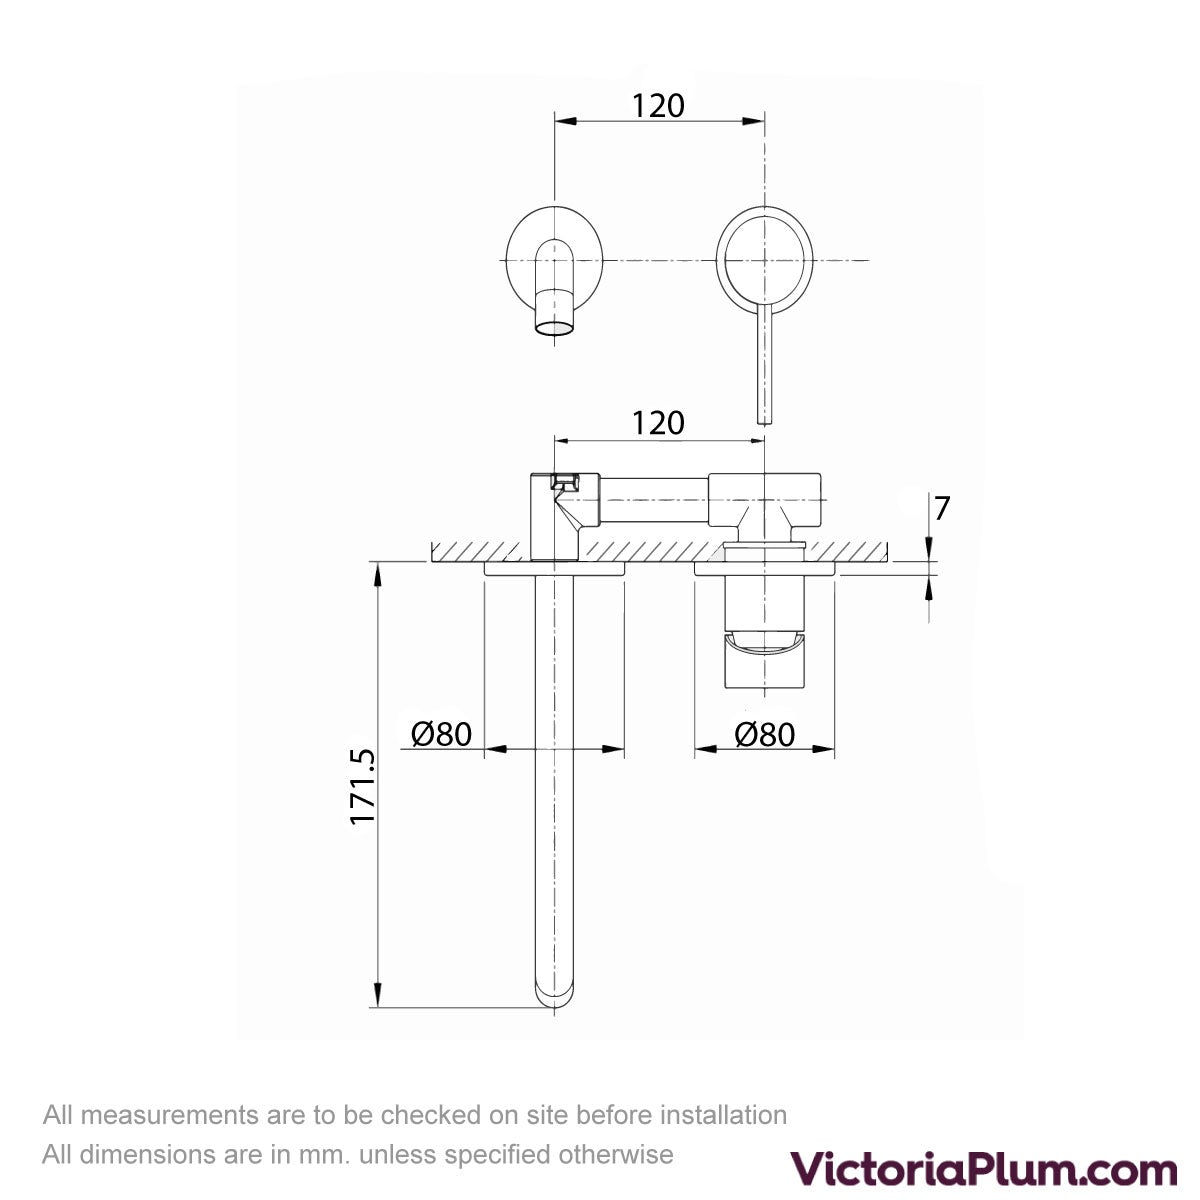 Dimensions for Mode Spencer round wall mounted black basin mixer tap